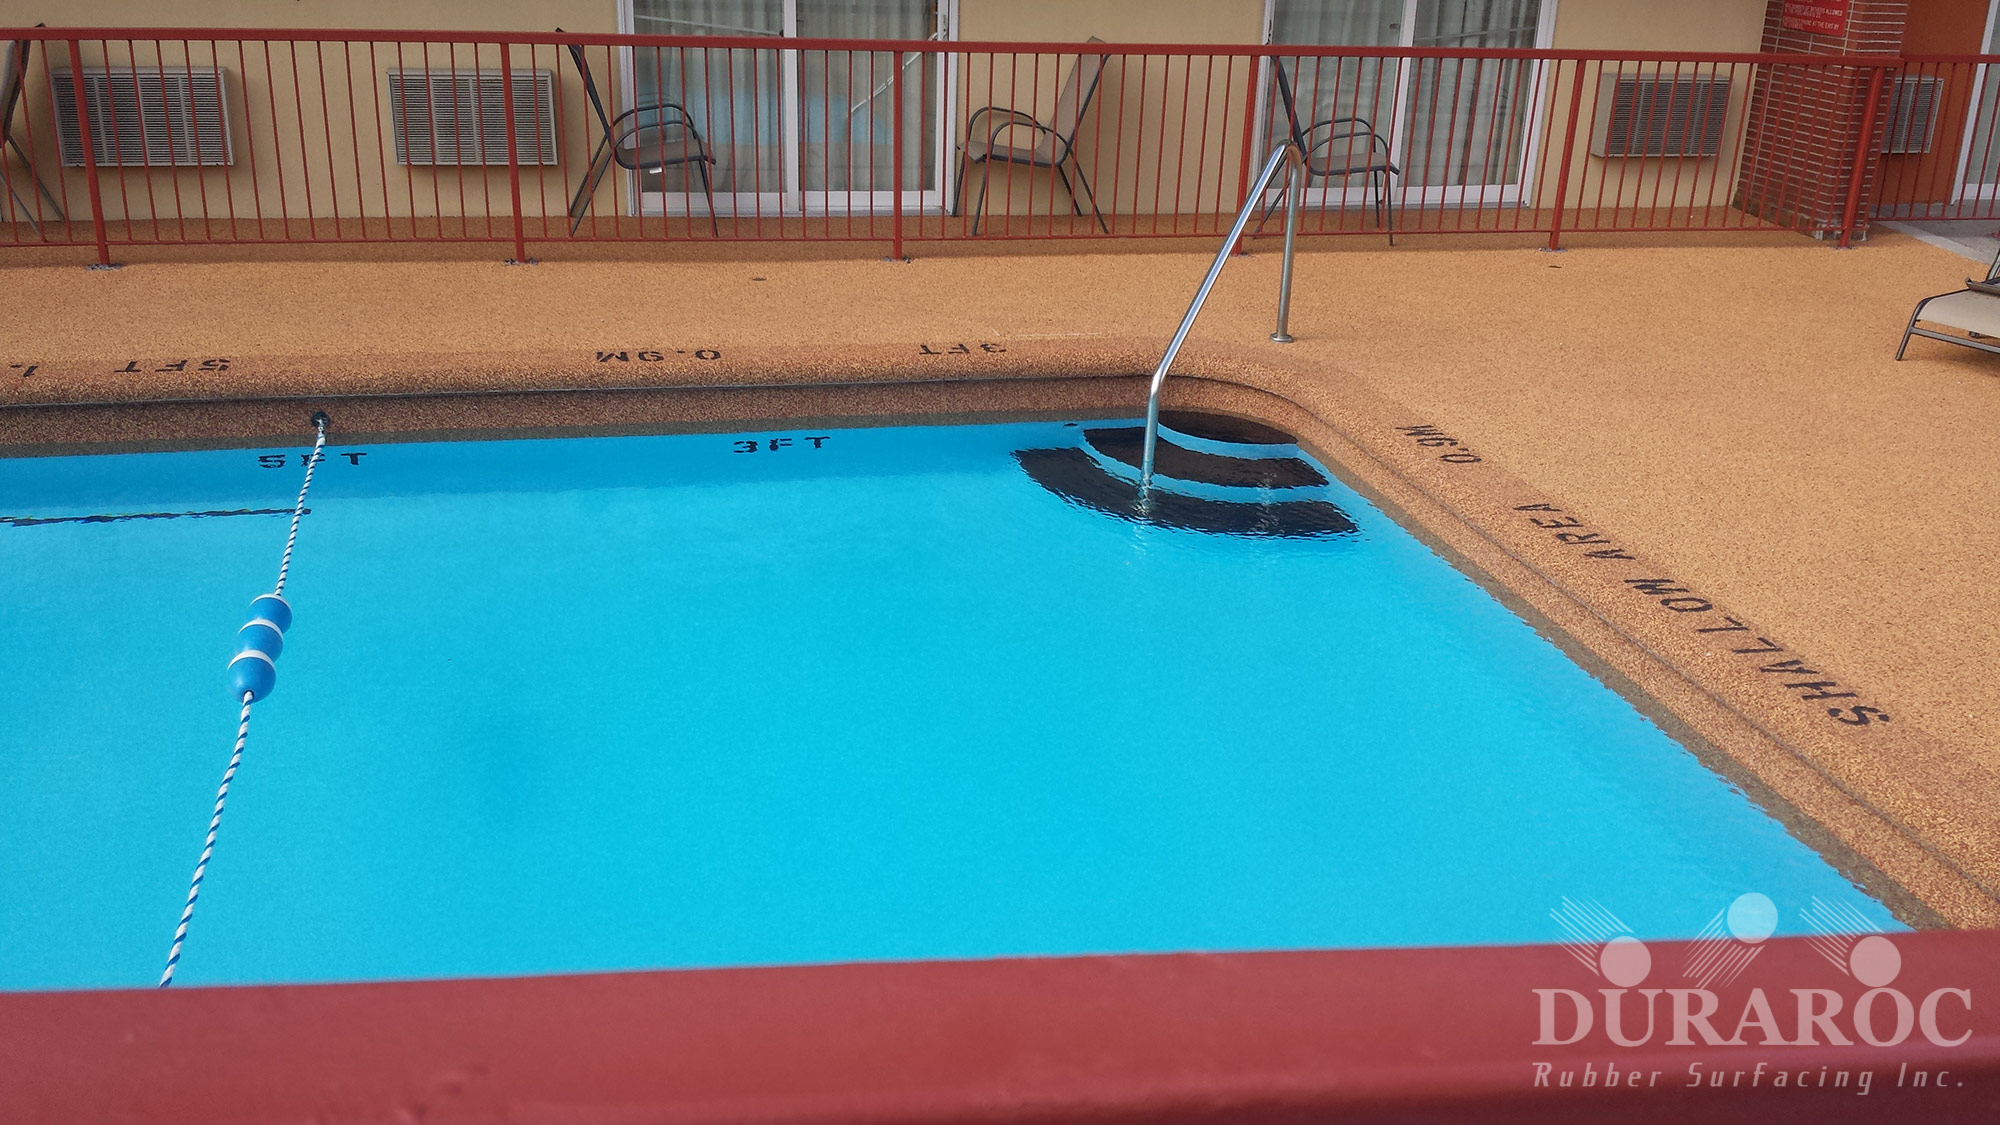 Outdoor pool Duraroc rubberized surface